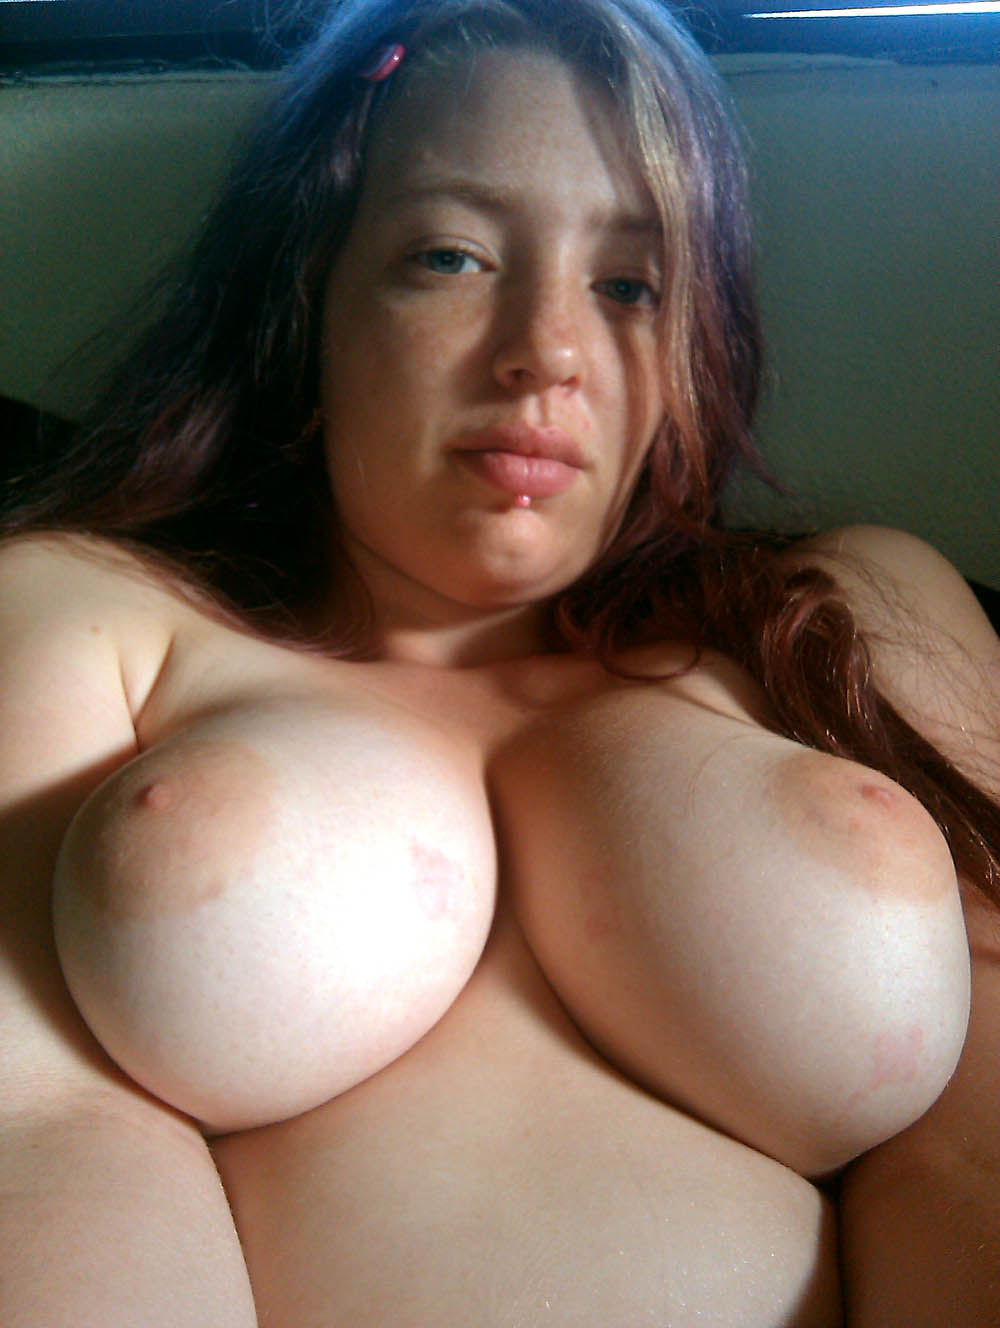 Big tits natural pictures